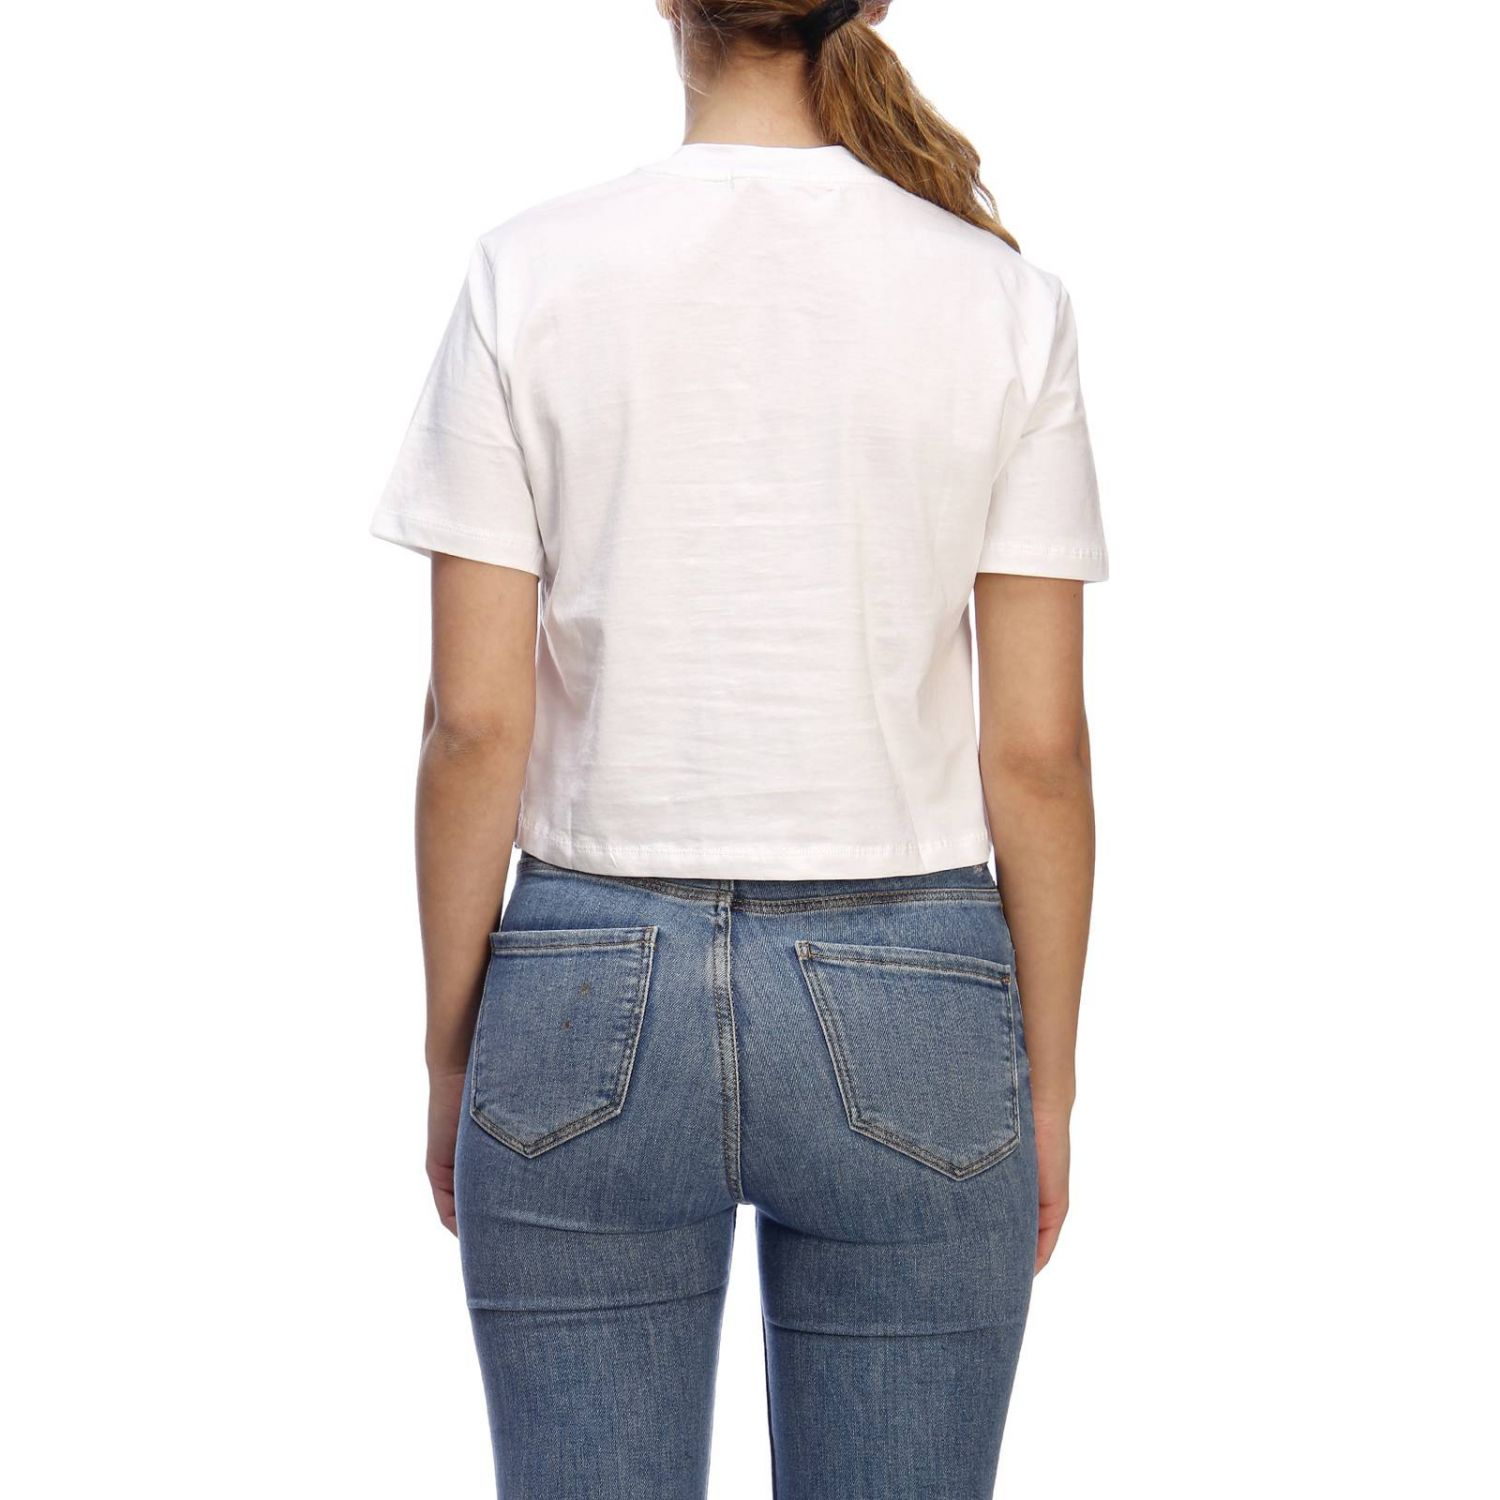 T-shirt con maxi stampa by Calvin Klein Jeans bianco 3